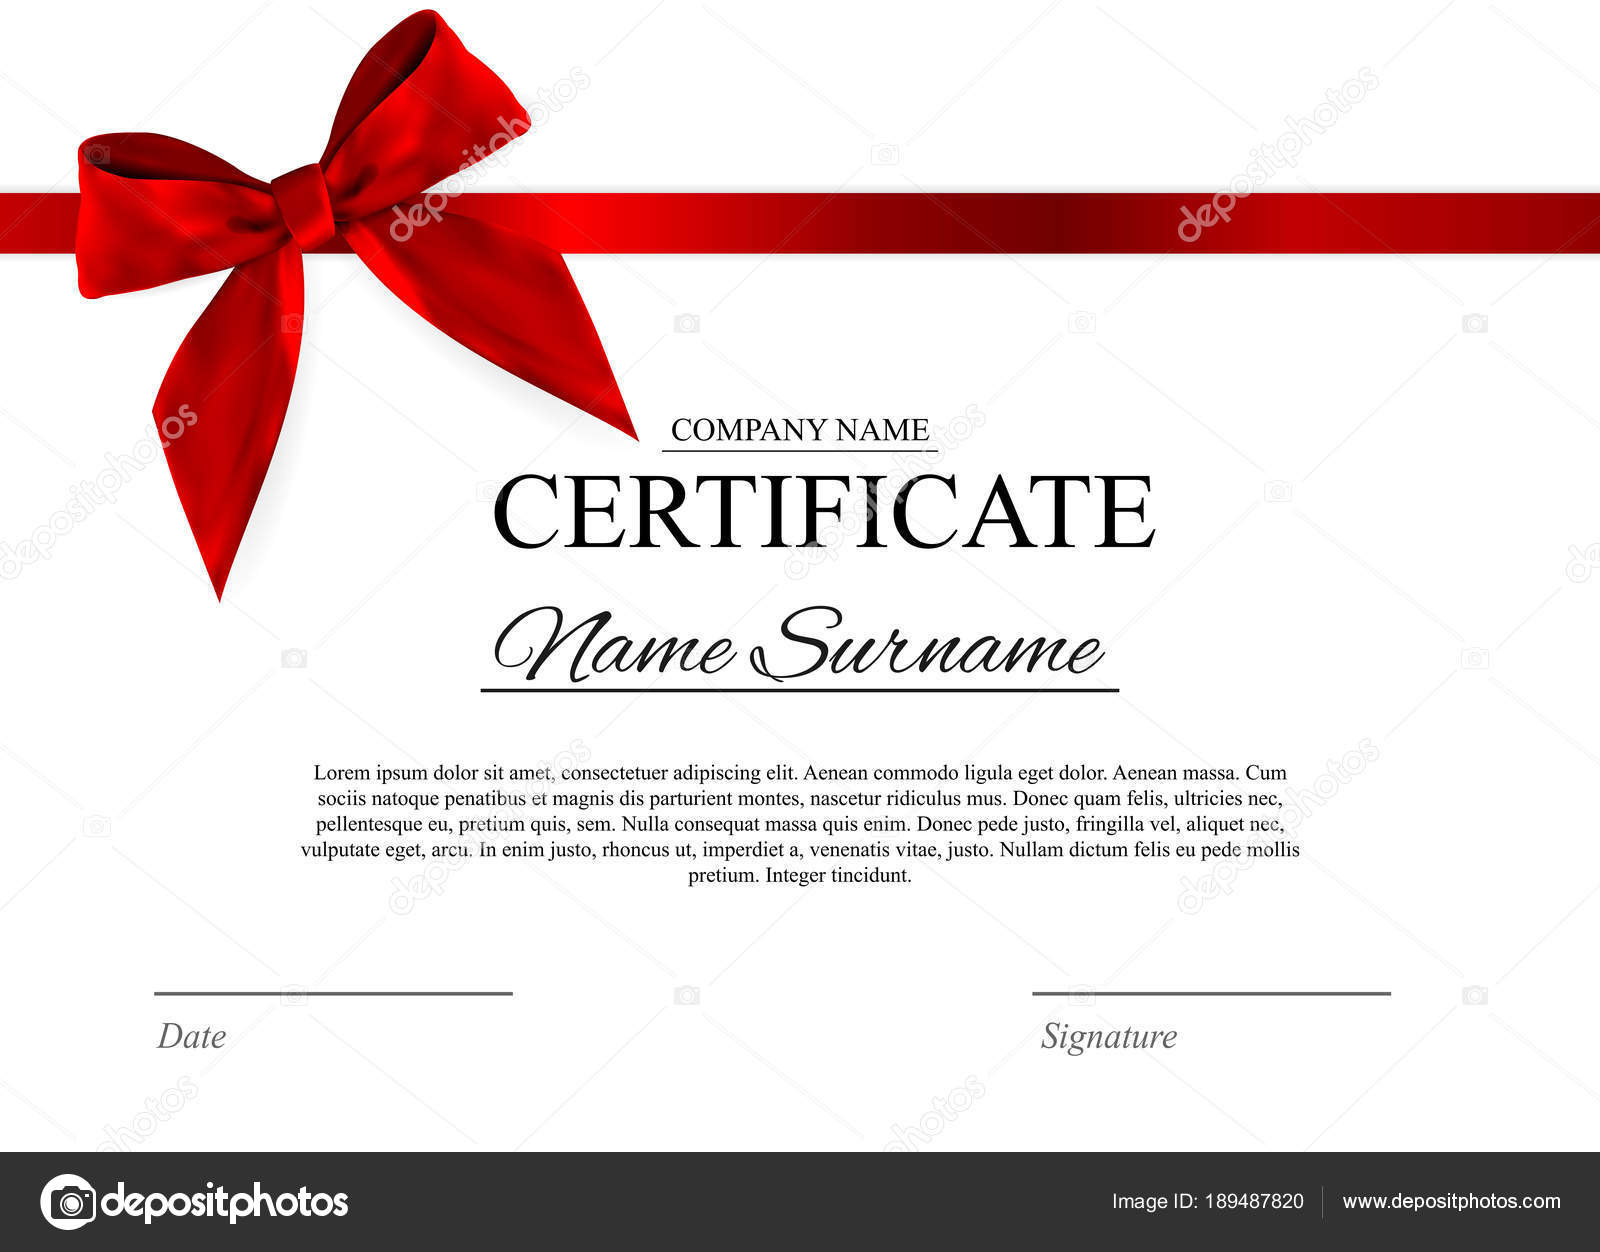 depositphotos_189487820-stock-illustration-certificate-template-background-with-red.jpg